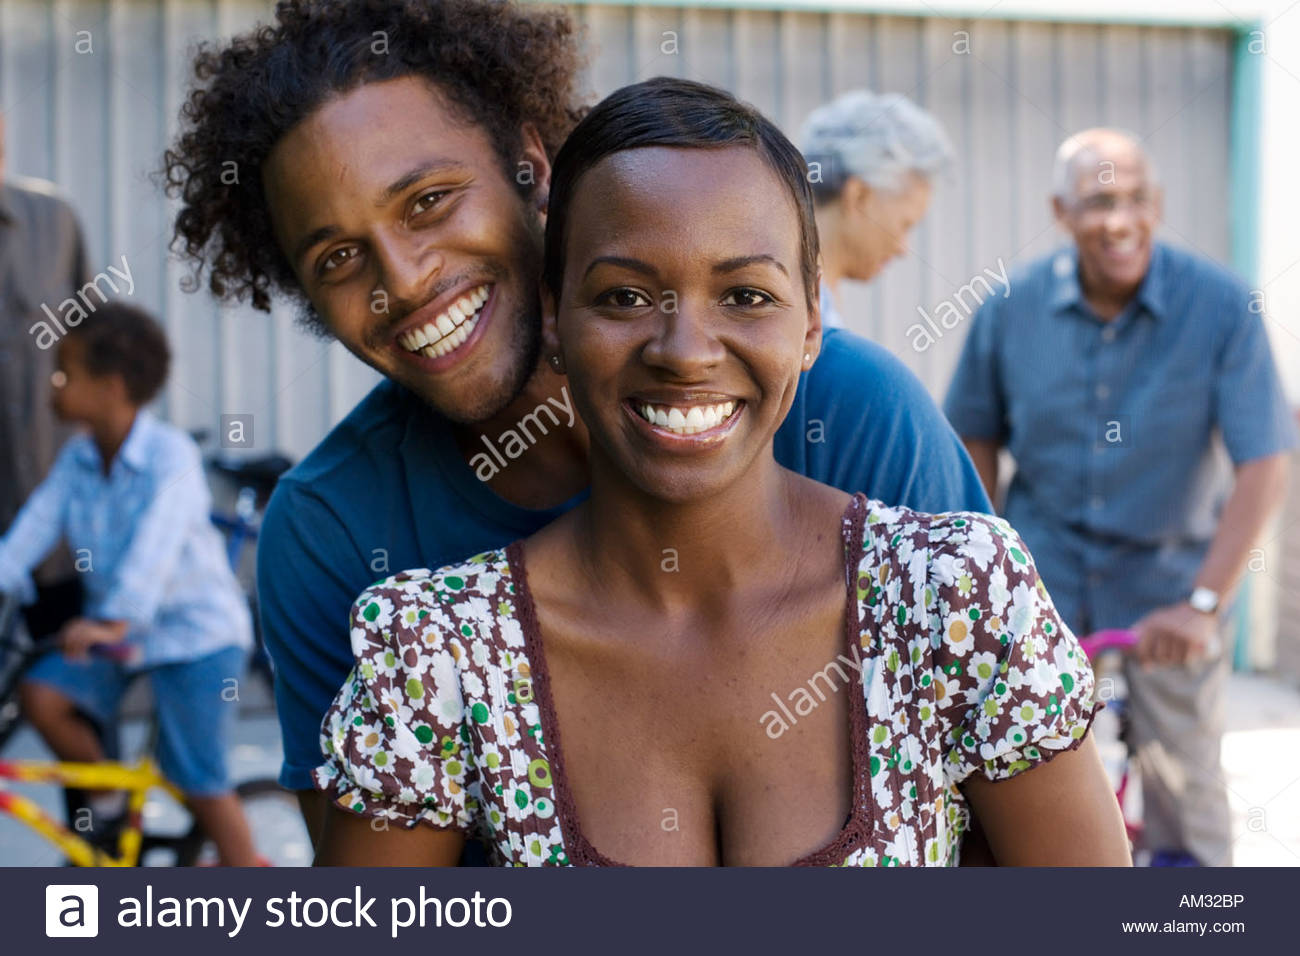 Couple embracing in driveway with people in background - Stock Image